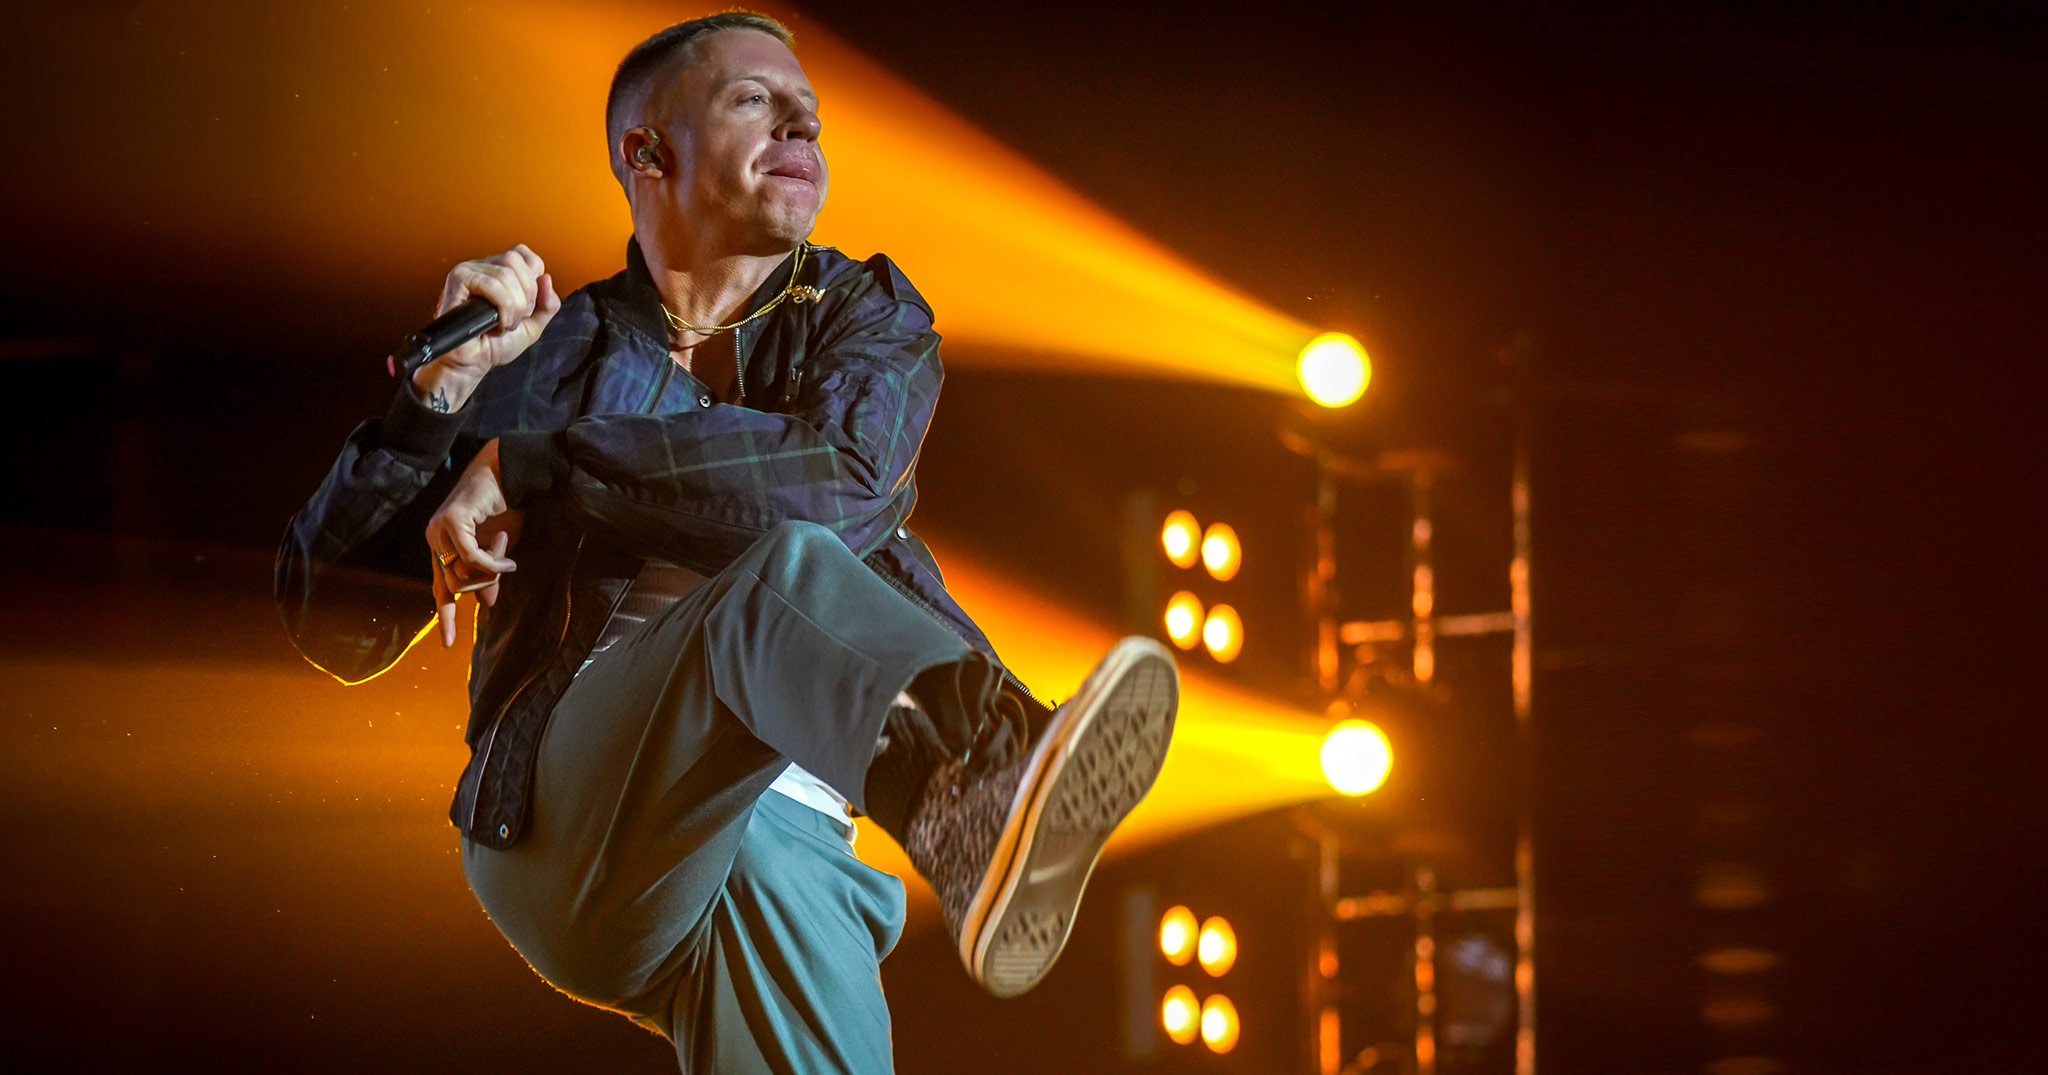 Macklemore performing live in Auckland, New Zealand 2018. Image by David Watson Photography.